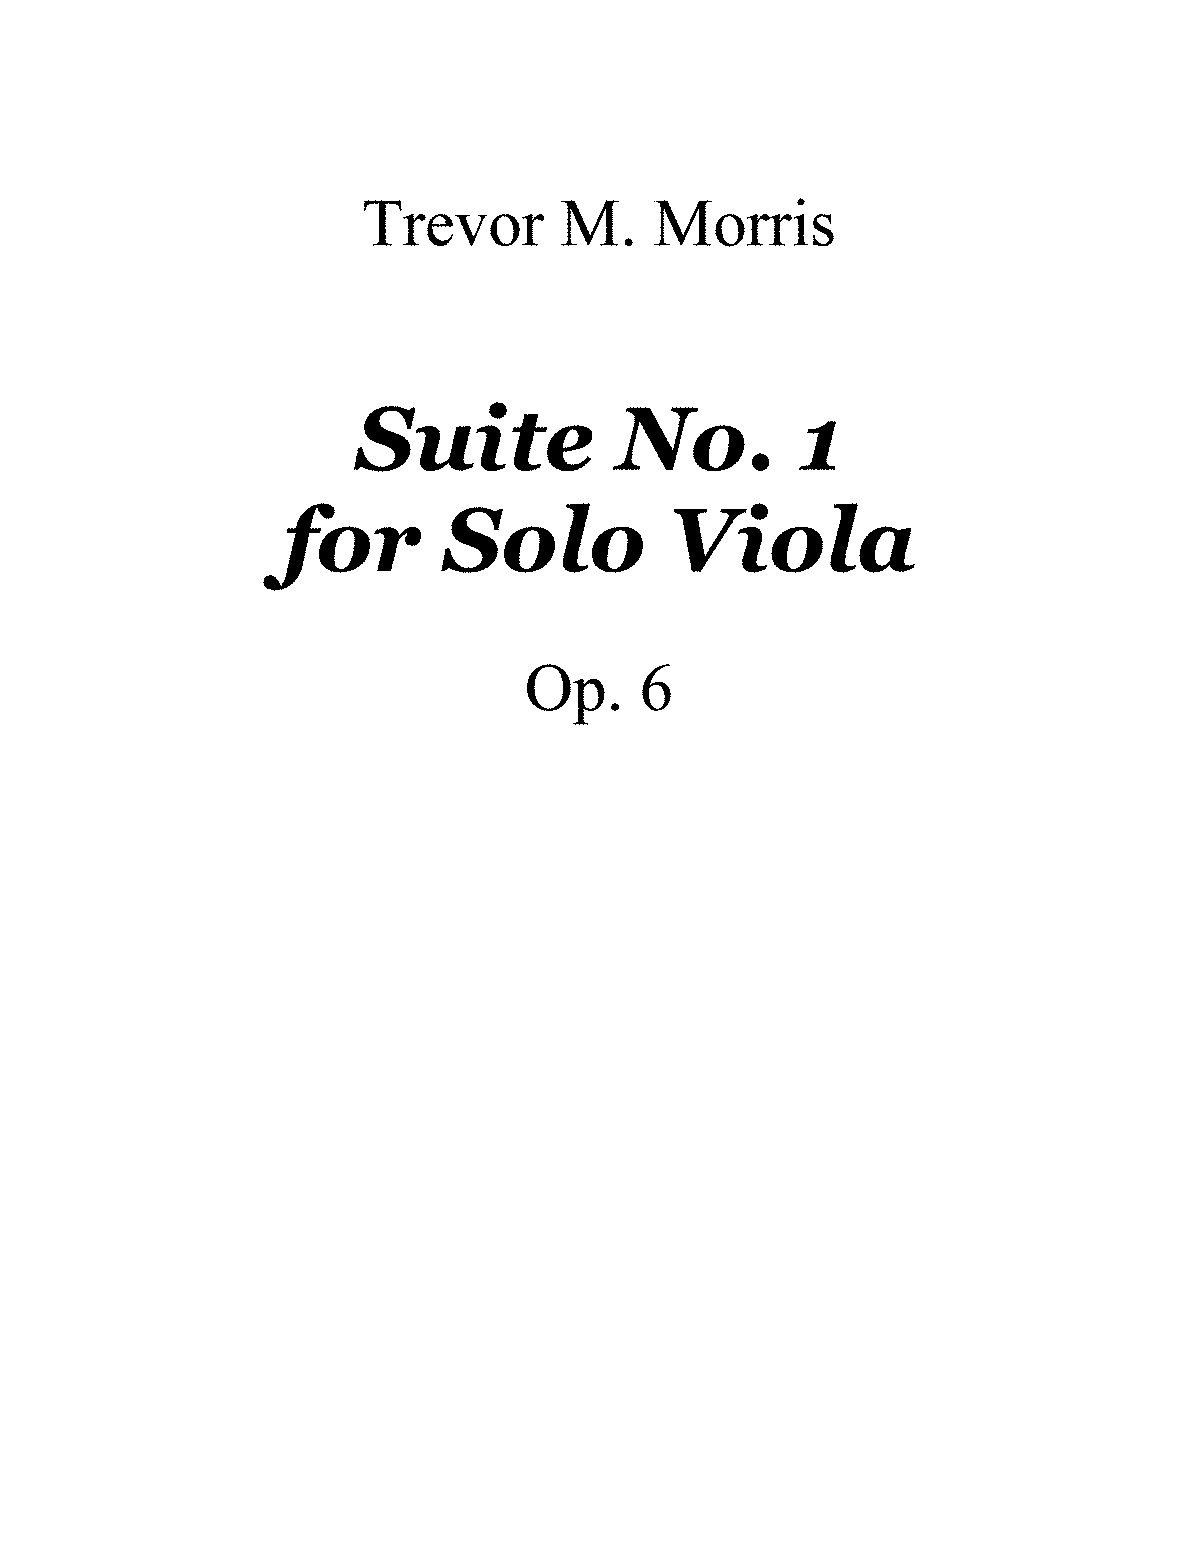 PMLP185904-Suite For Solo Viola No 1 MorrisTrevorM.pdf